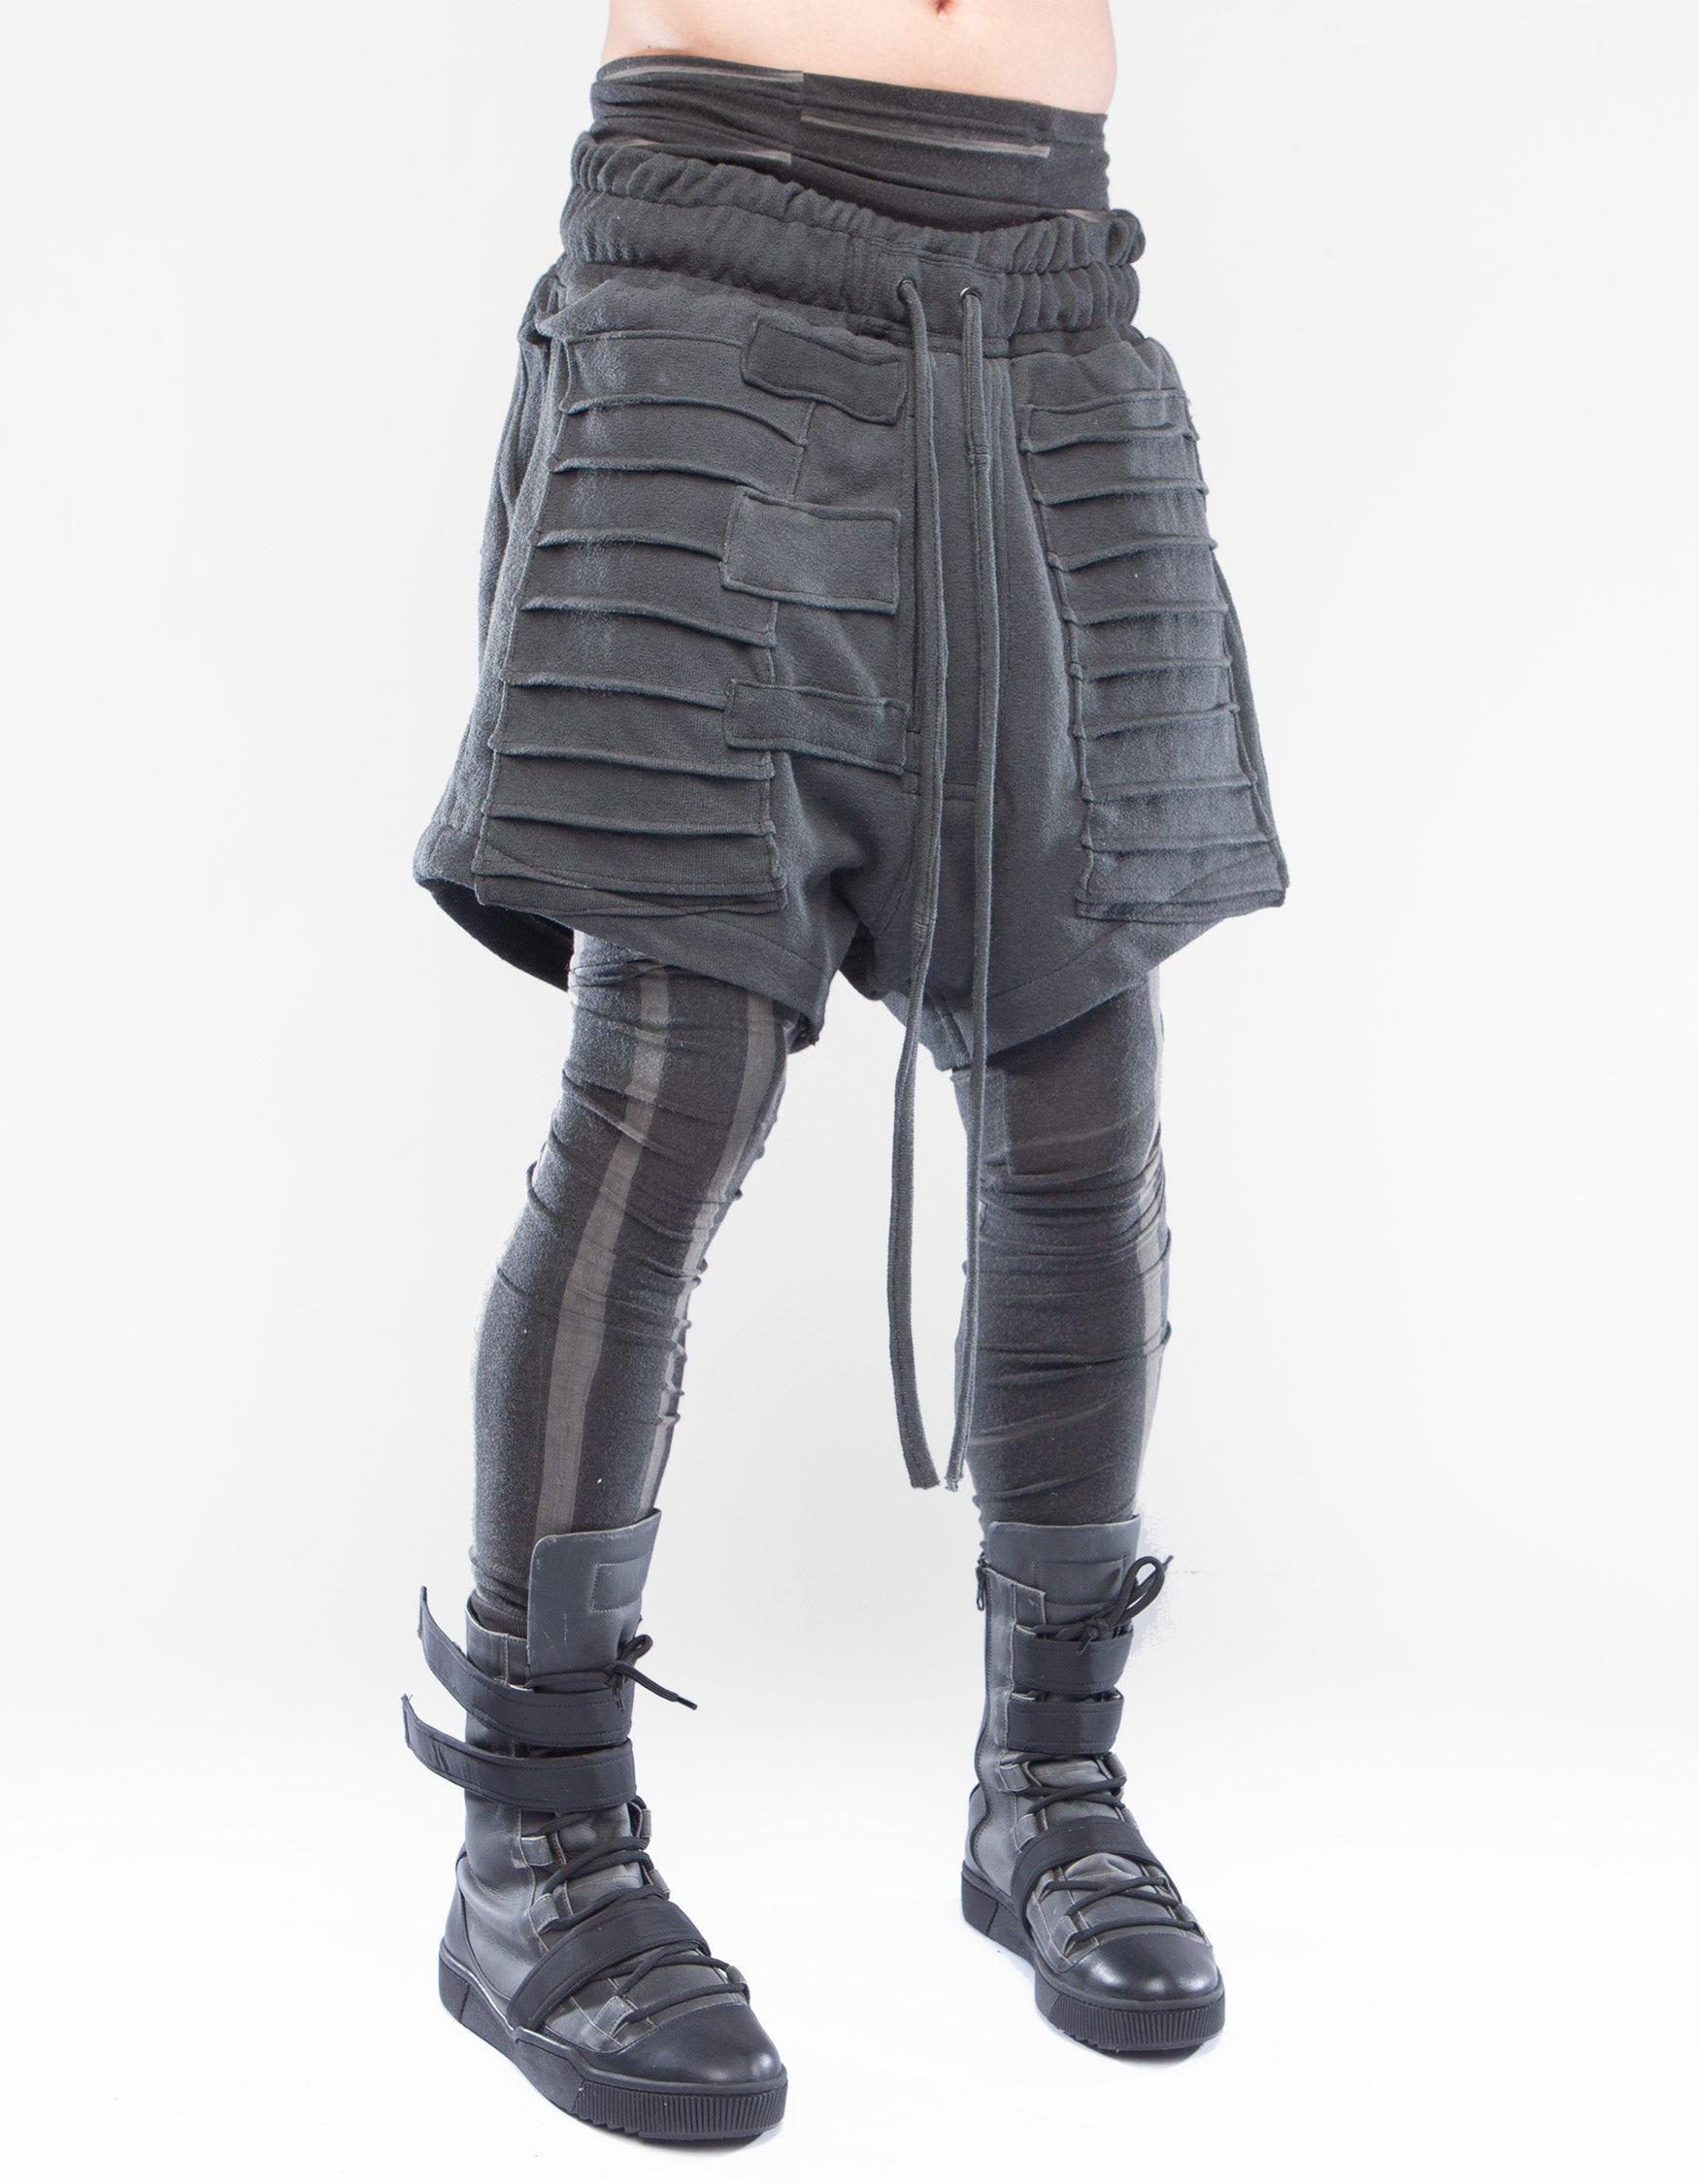 SHORTS GREY CRYSTALLIZE